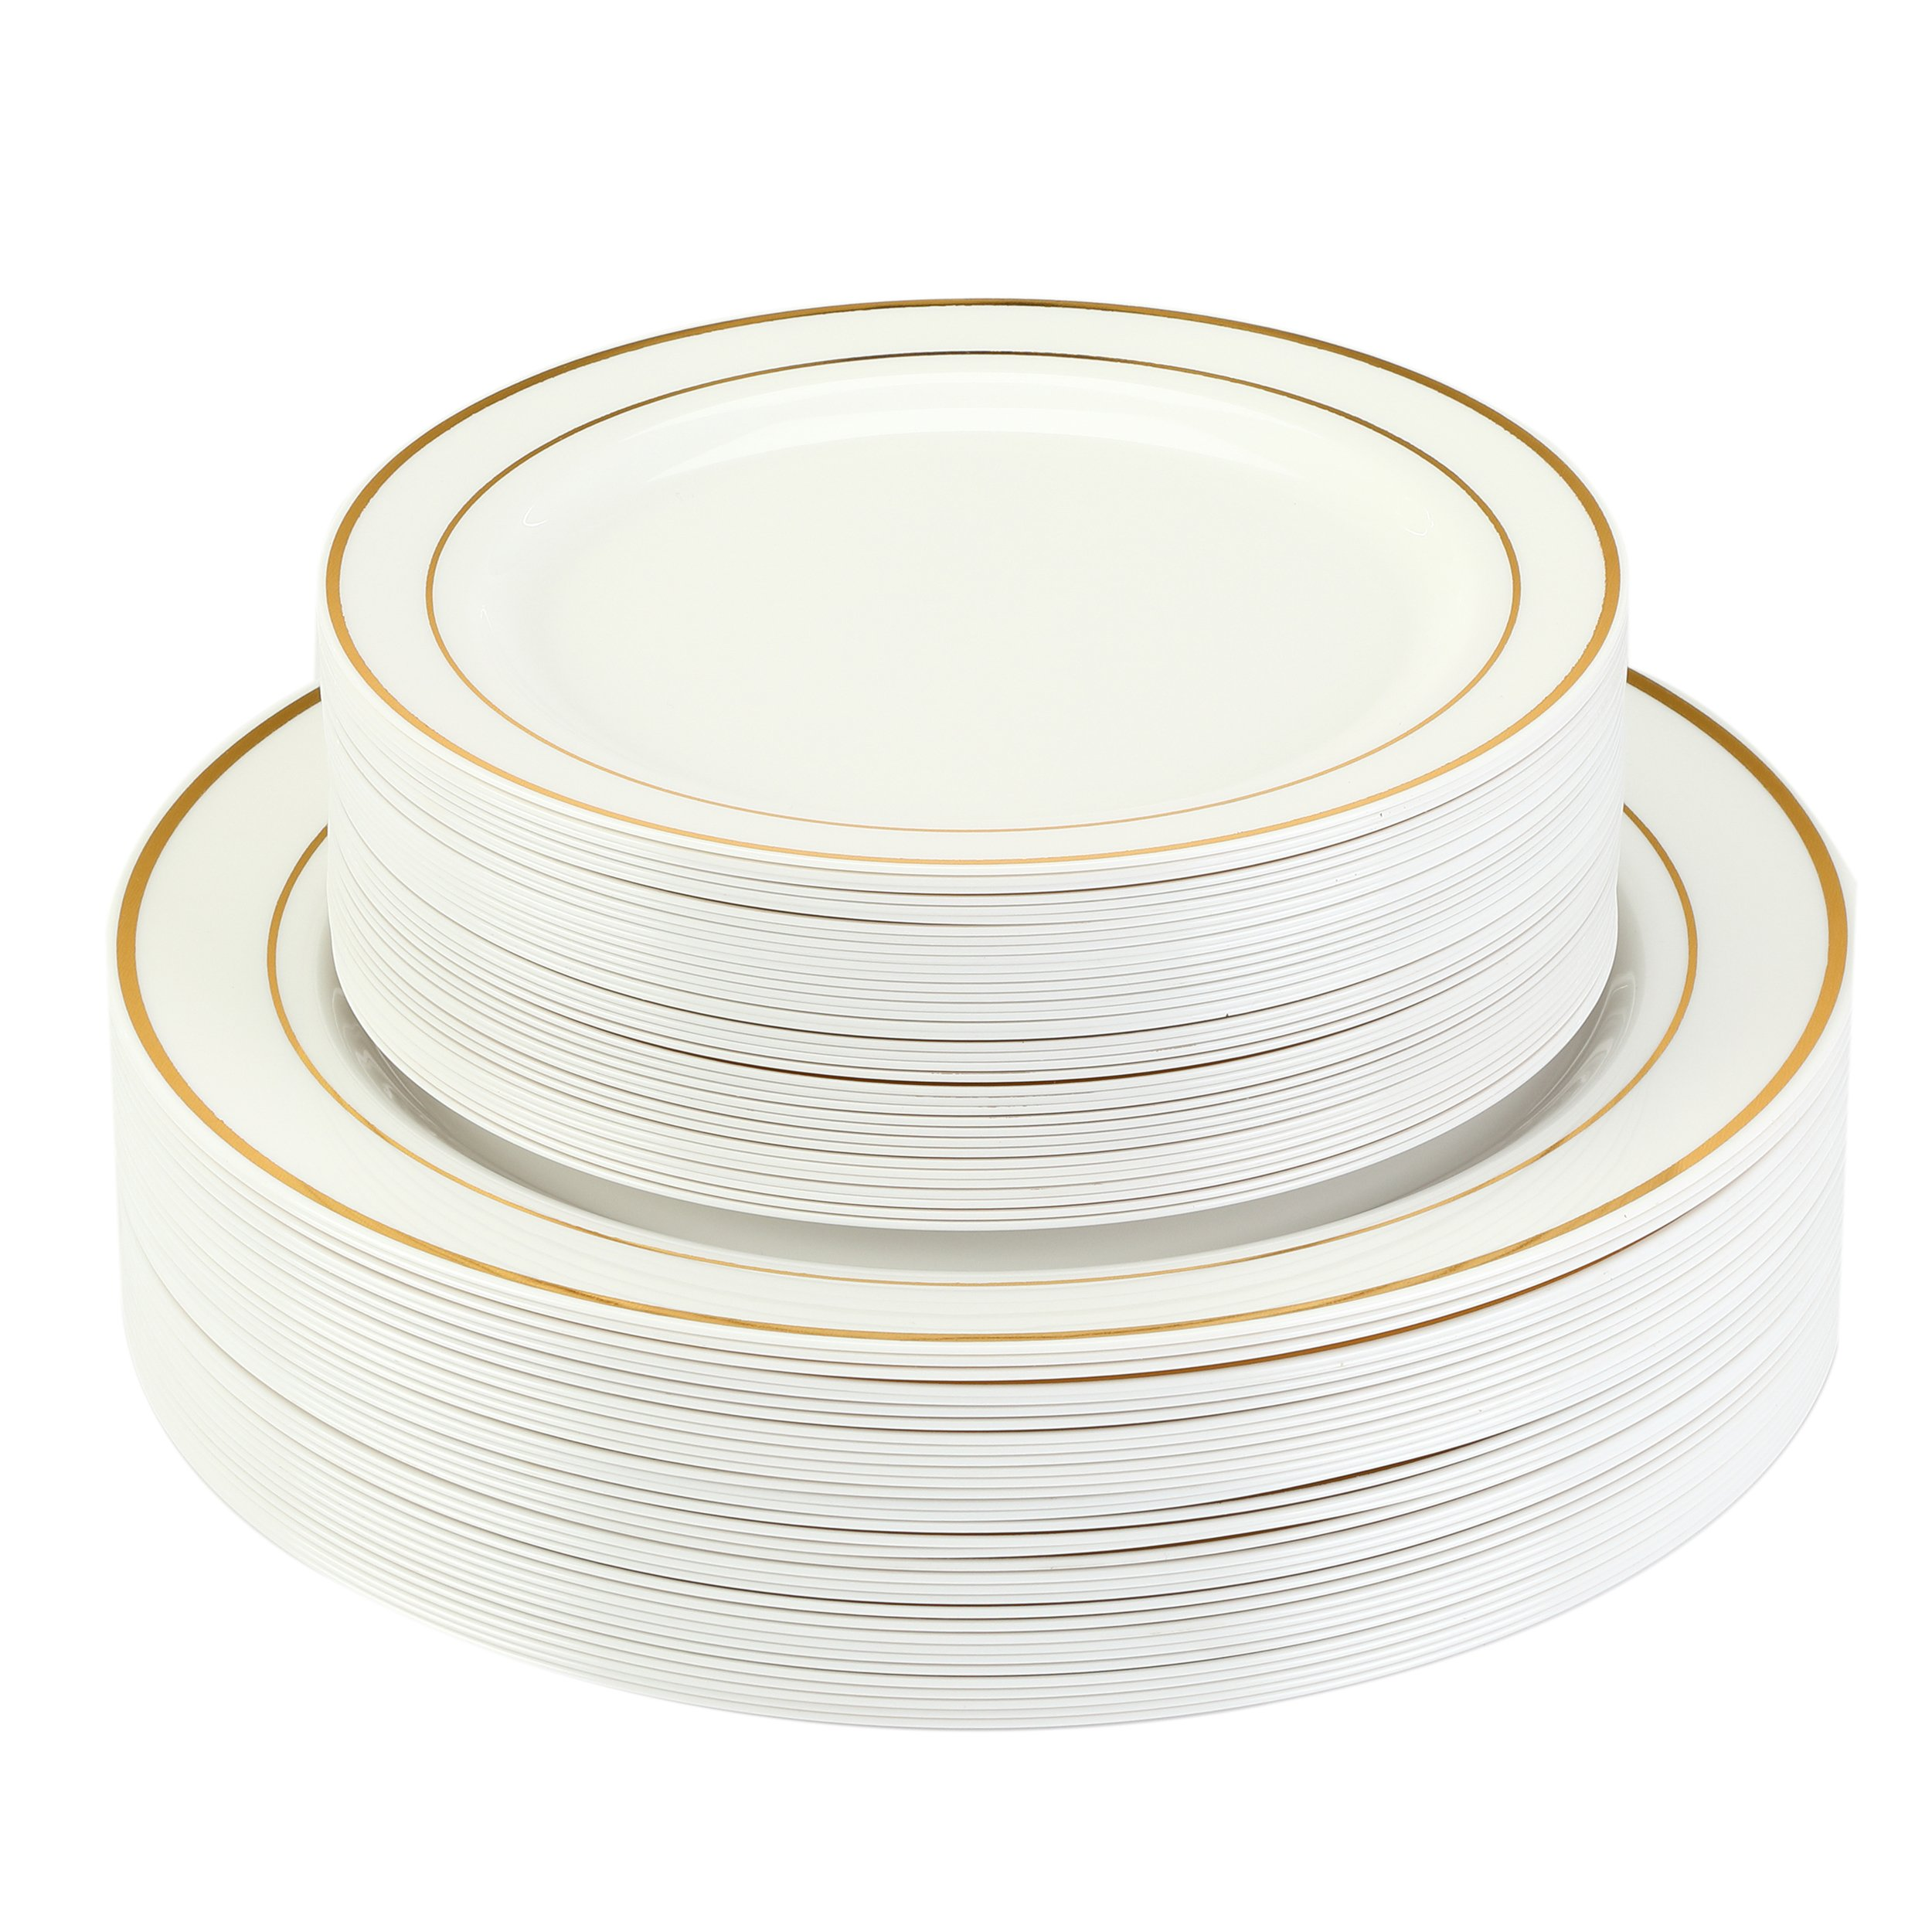 """Premium Disposable Plastic Plates 240 Pack (120 x 10.5"""" Dinner + 120 x 7.5"""" Salad/Desert) Ivory with Gold Rim by Finest Cutlery for Weddings, Parties, and Special Occasions"""